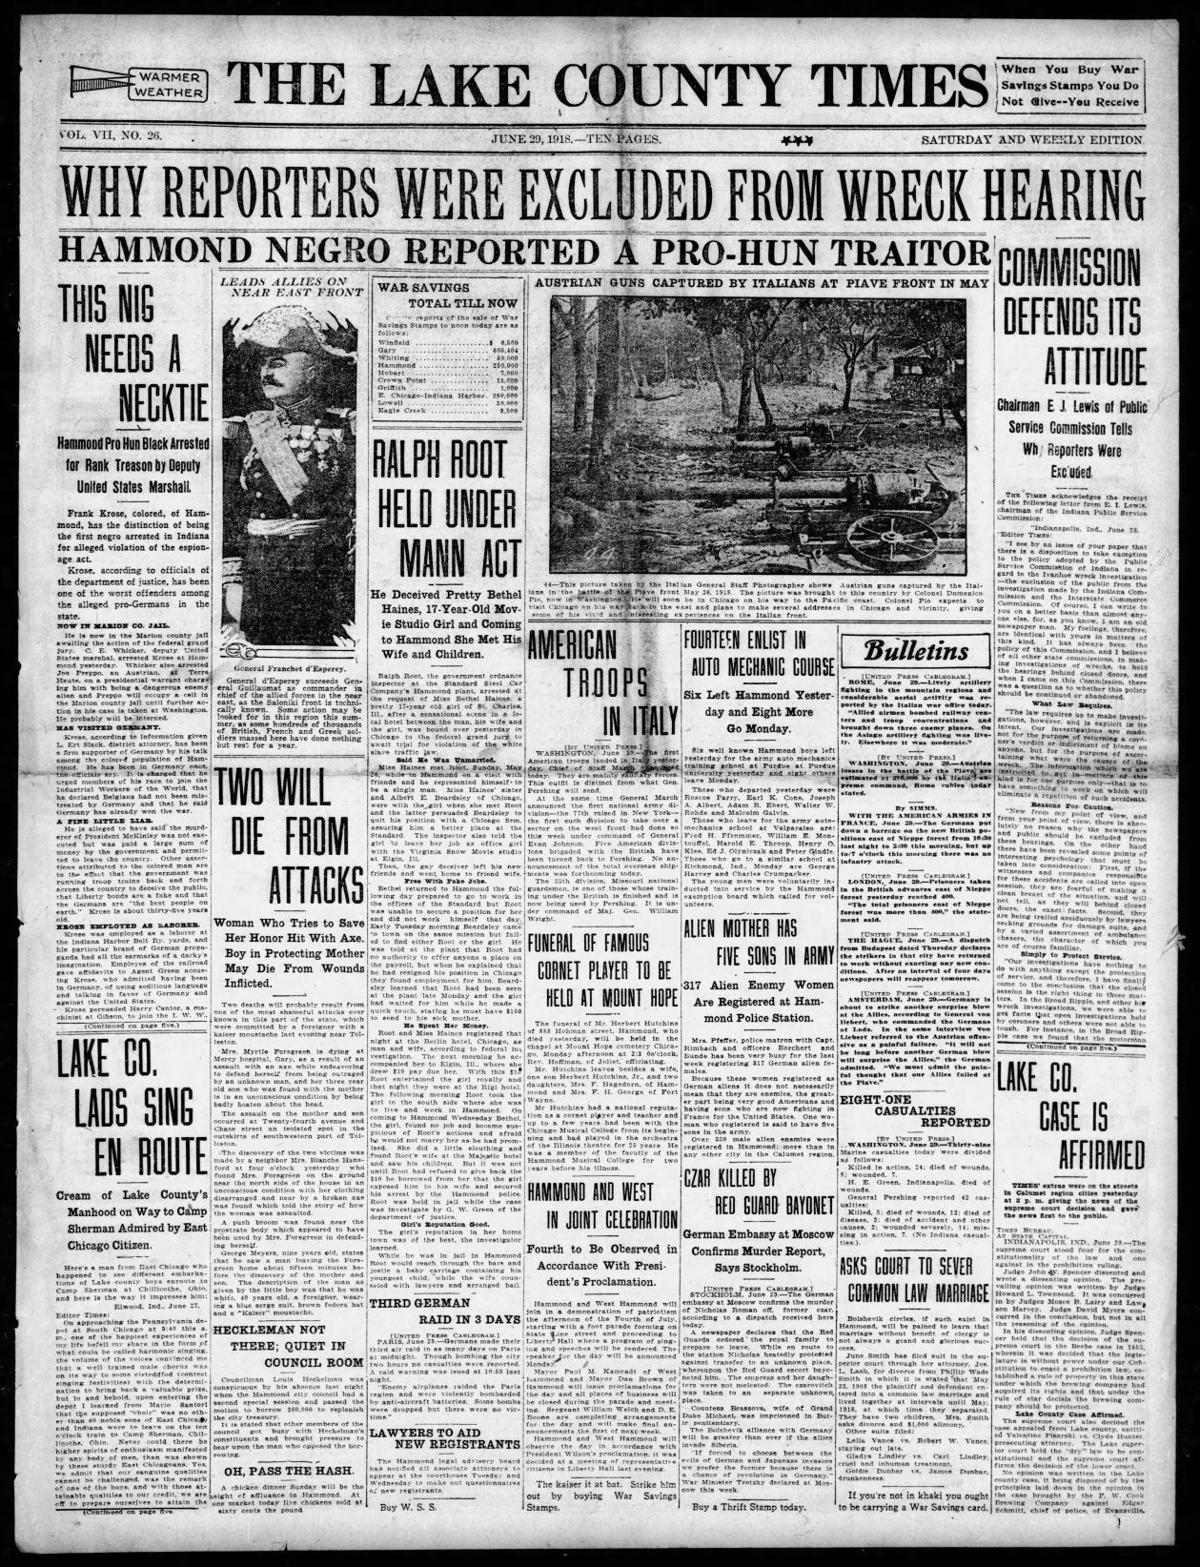 June 29, 1918: Why Reporters Were Excluded From Wreck Hearing